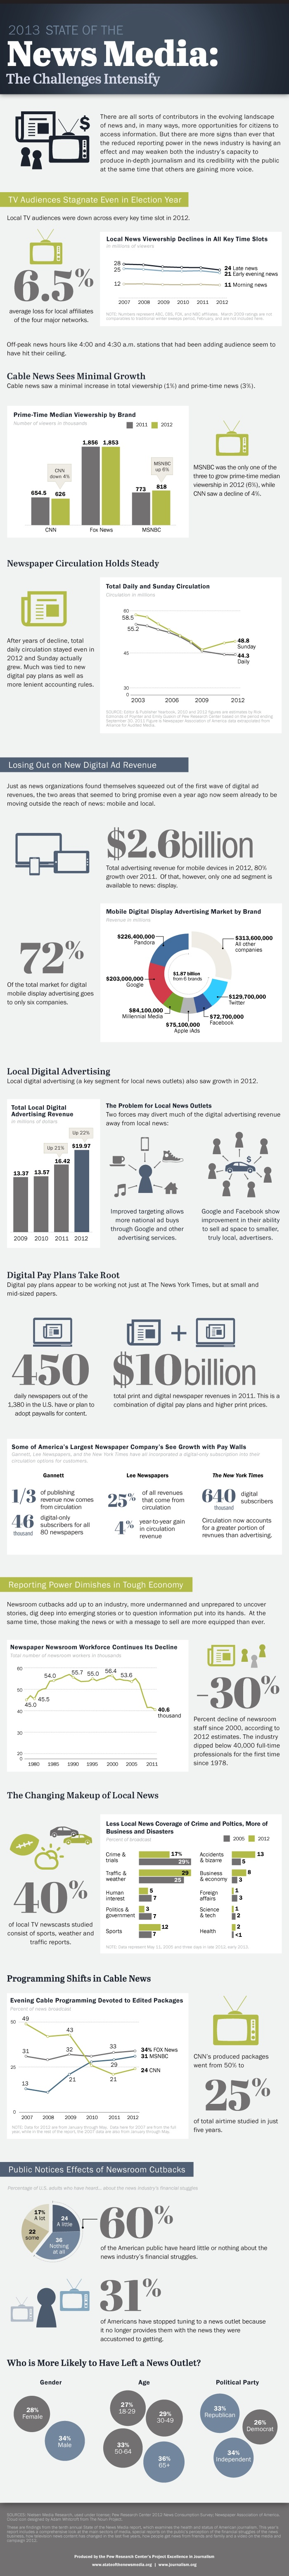 Pew Research Center's 2013 State of the News Media